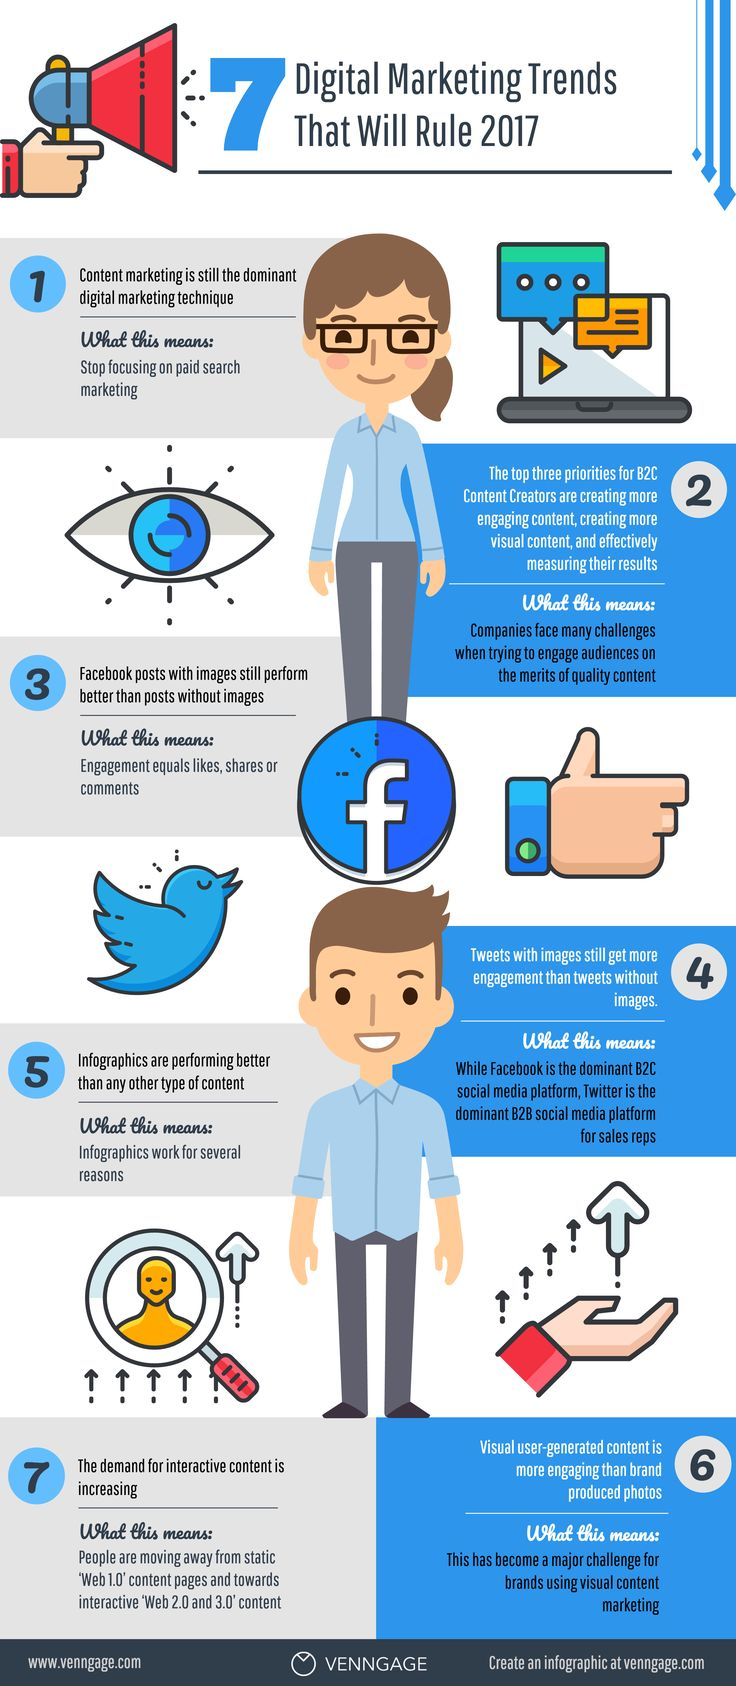 7 #Digital #Marketing Trends That Will Rule 2017! #Web #Online #Business #Entrepreneur #Startup #Content #Tech #Entreprise #SocialMedia